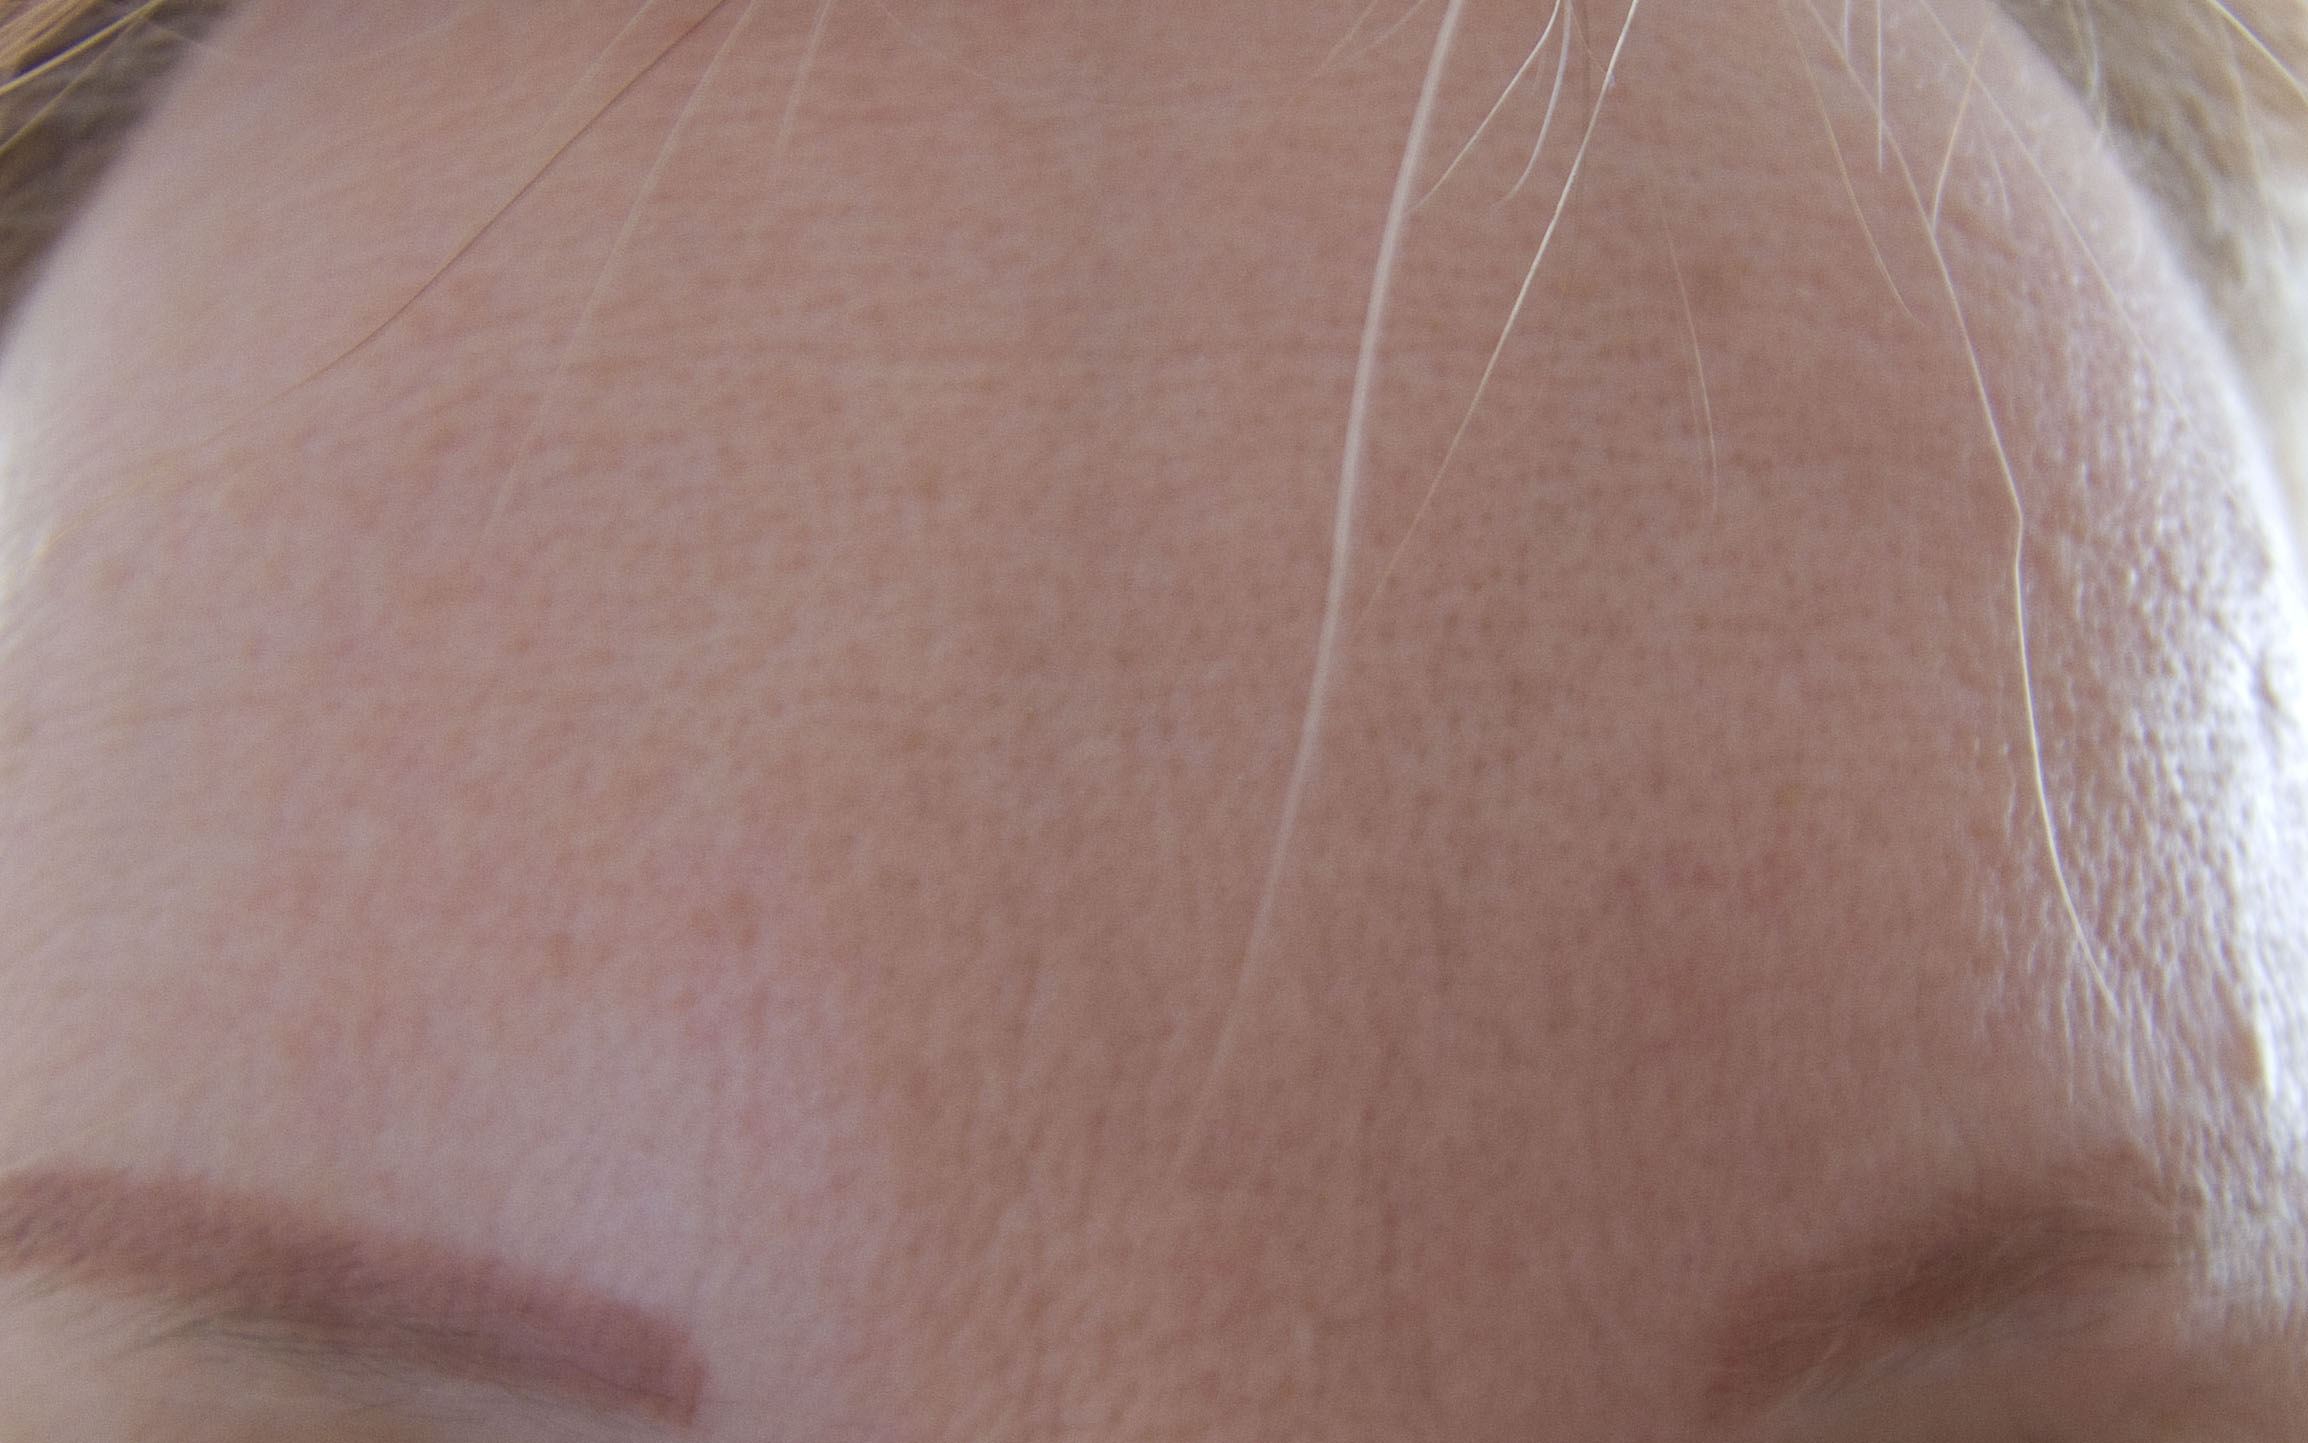 Forehead Prior to Peel